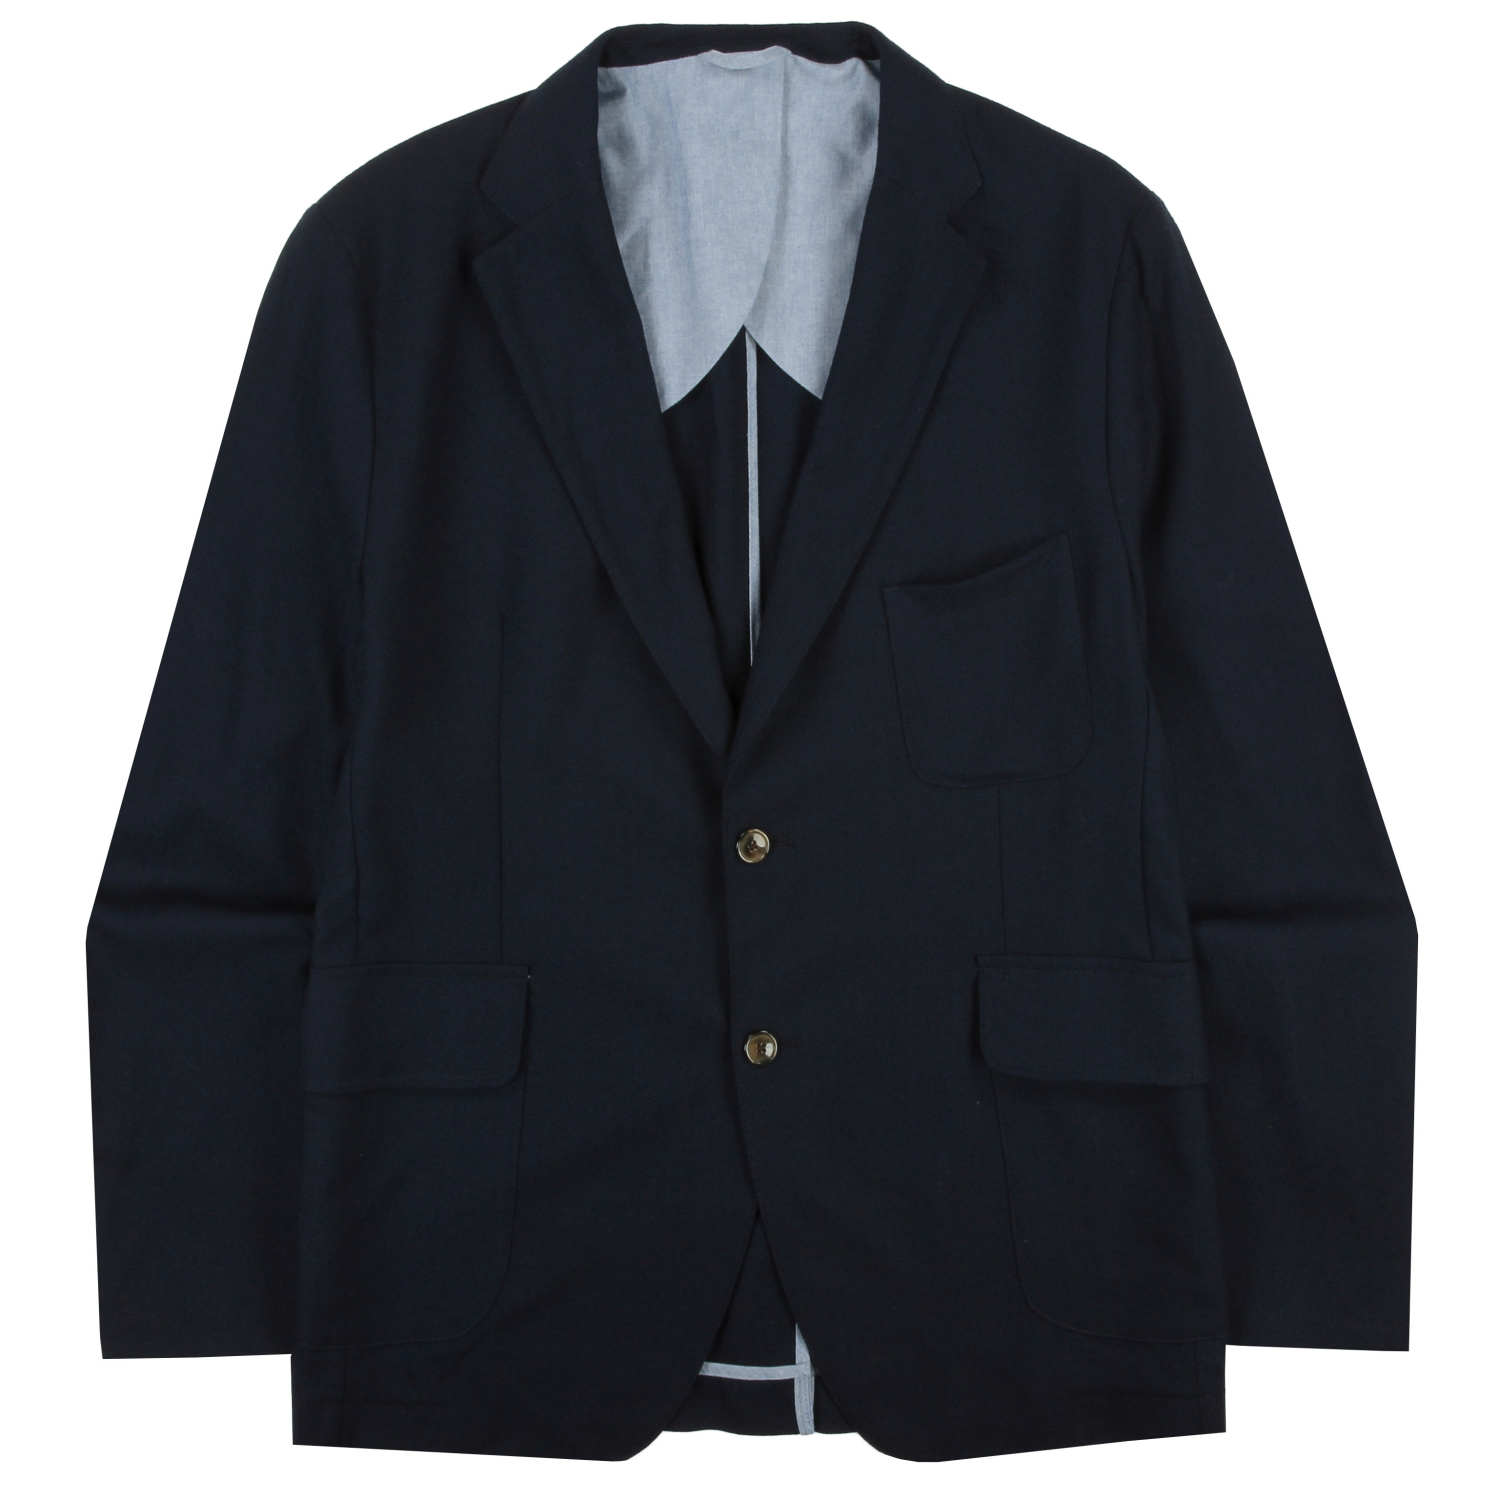 The Telegraph Blazer